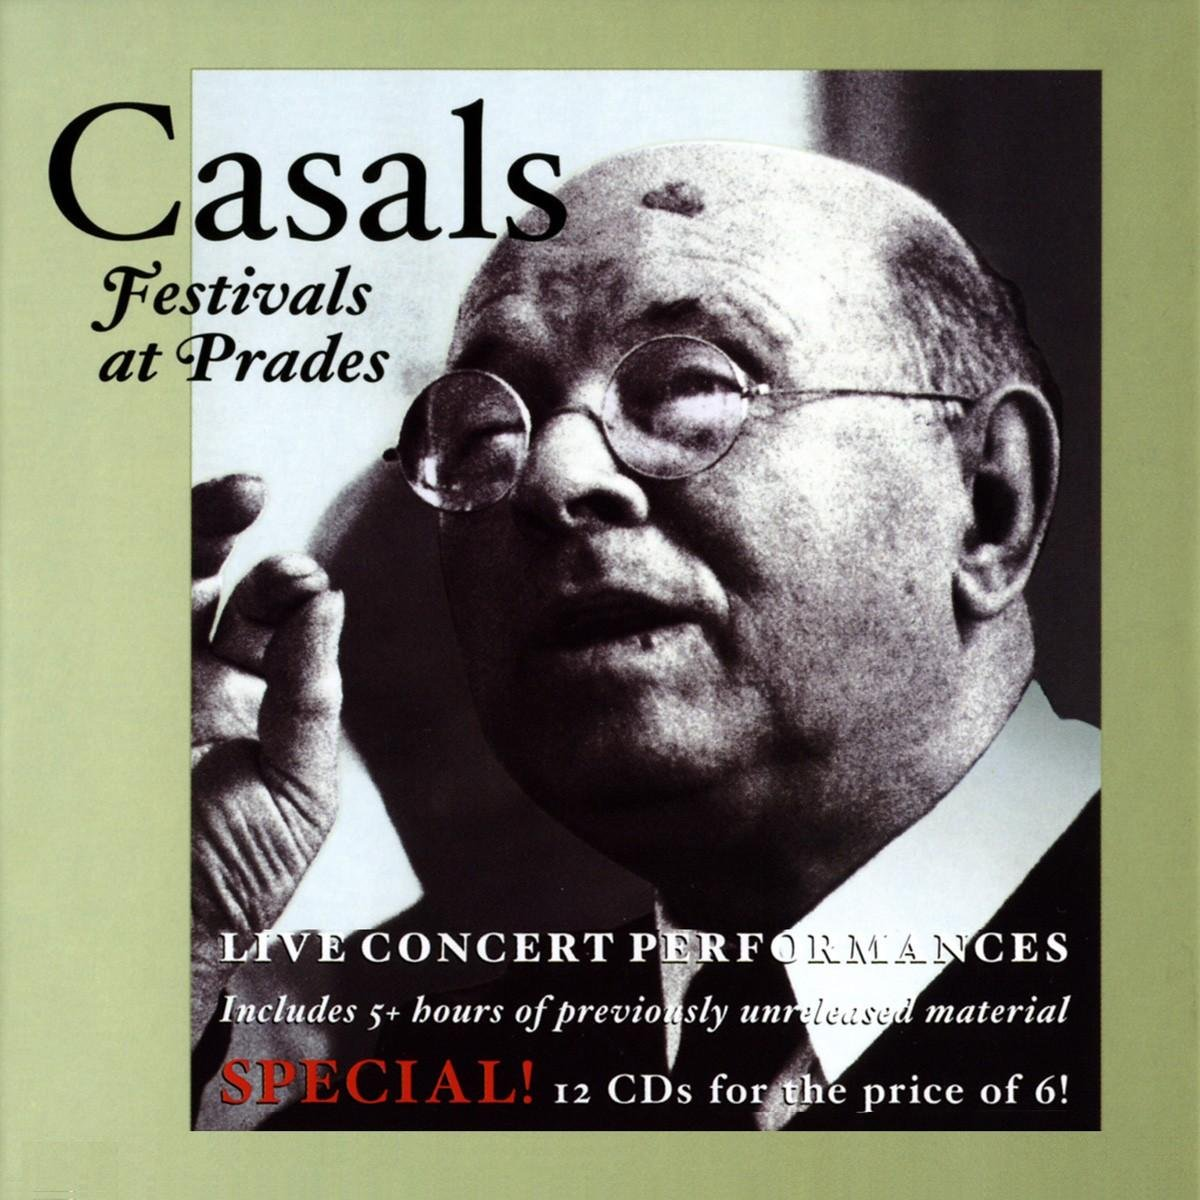 Pablo Casals: Festivals at Prades  Vol. 1 by CASALS FESTIVALS AT PRADES-LIVE CONCERT PERFORMANC